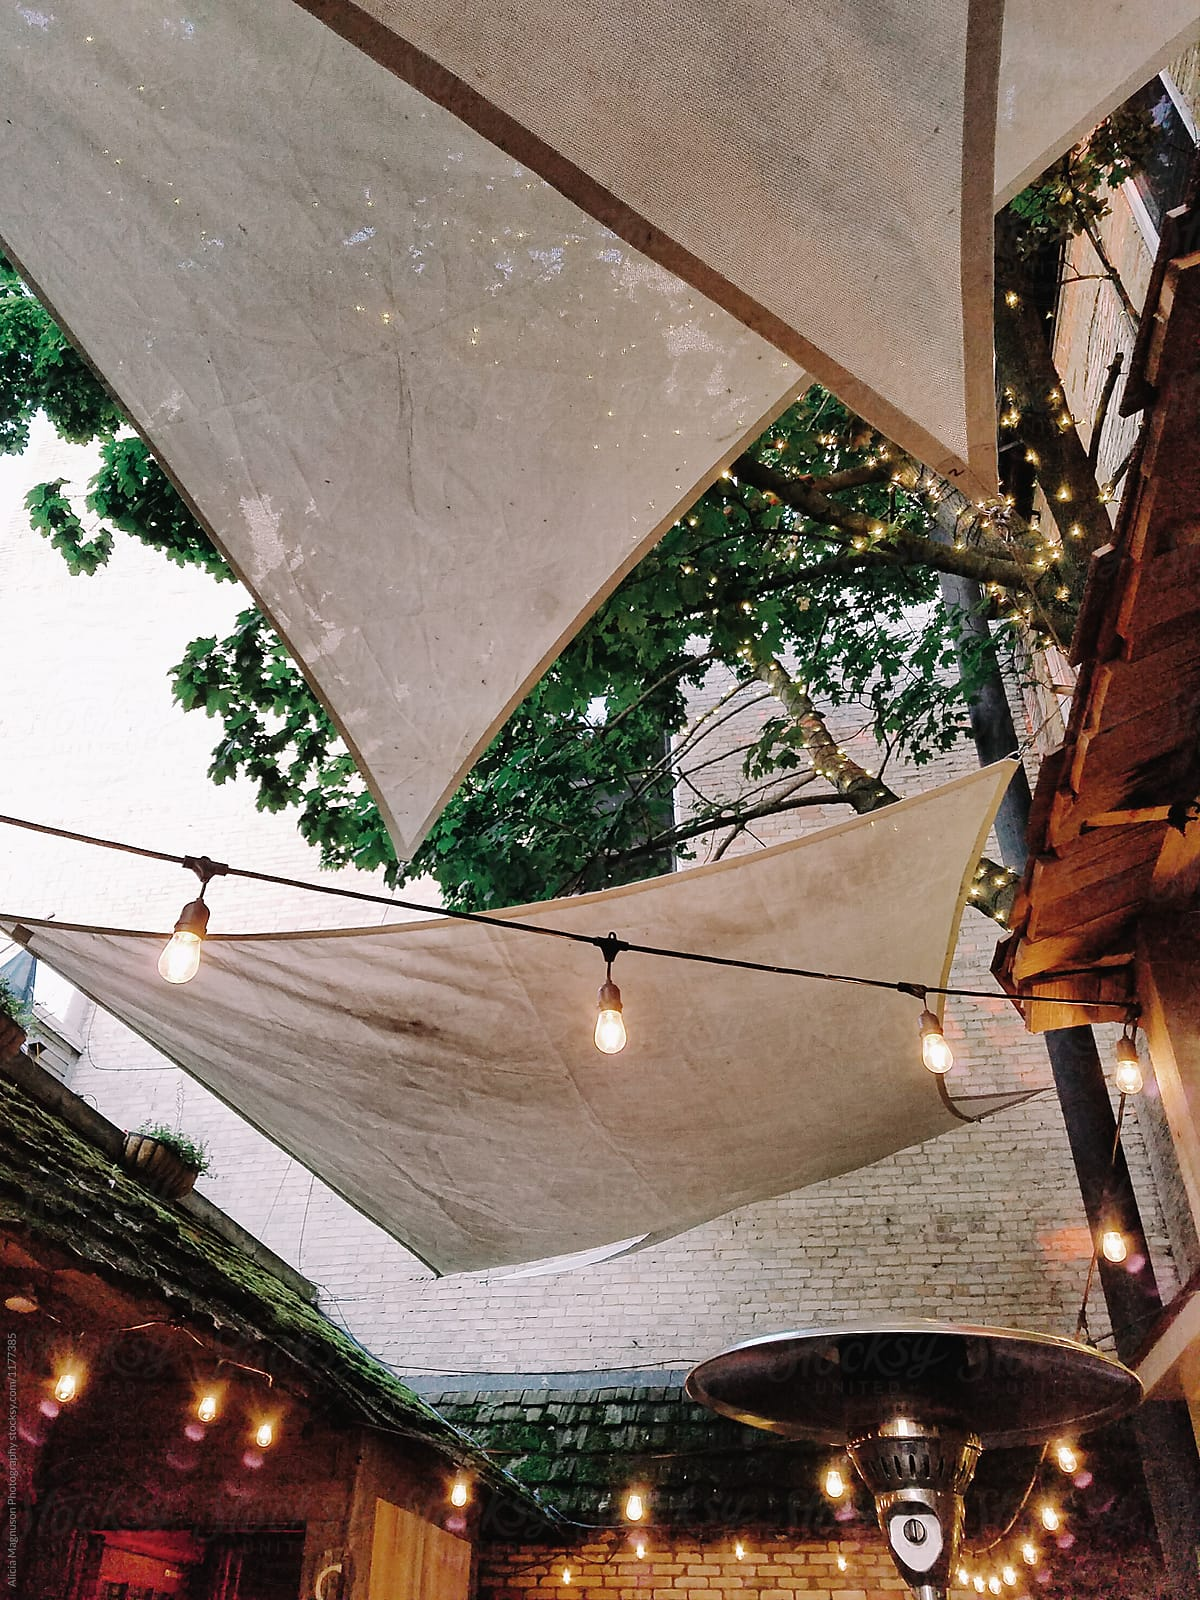 shade tarps and cafe lights at outdoor bistro by alicia magnuson photography for stocksy united